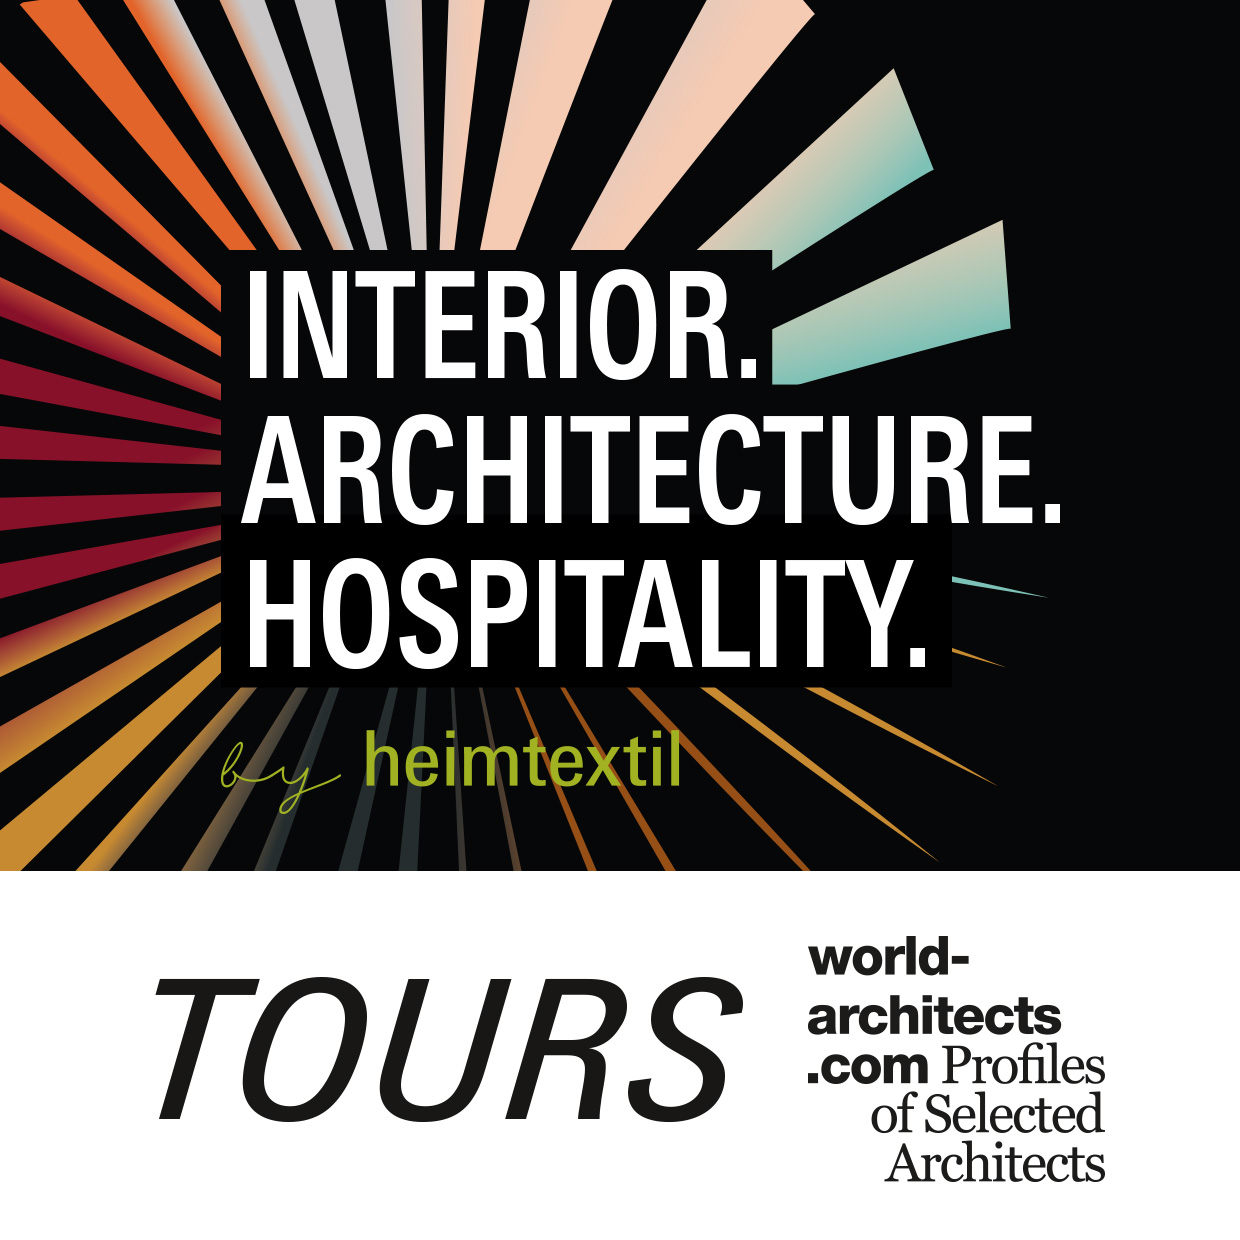 guided-tour-by-world-architects3